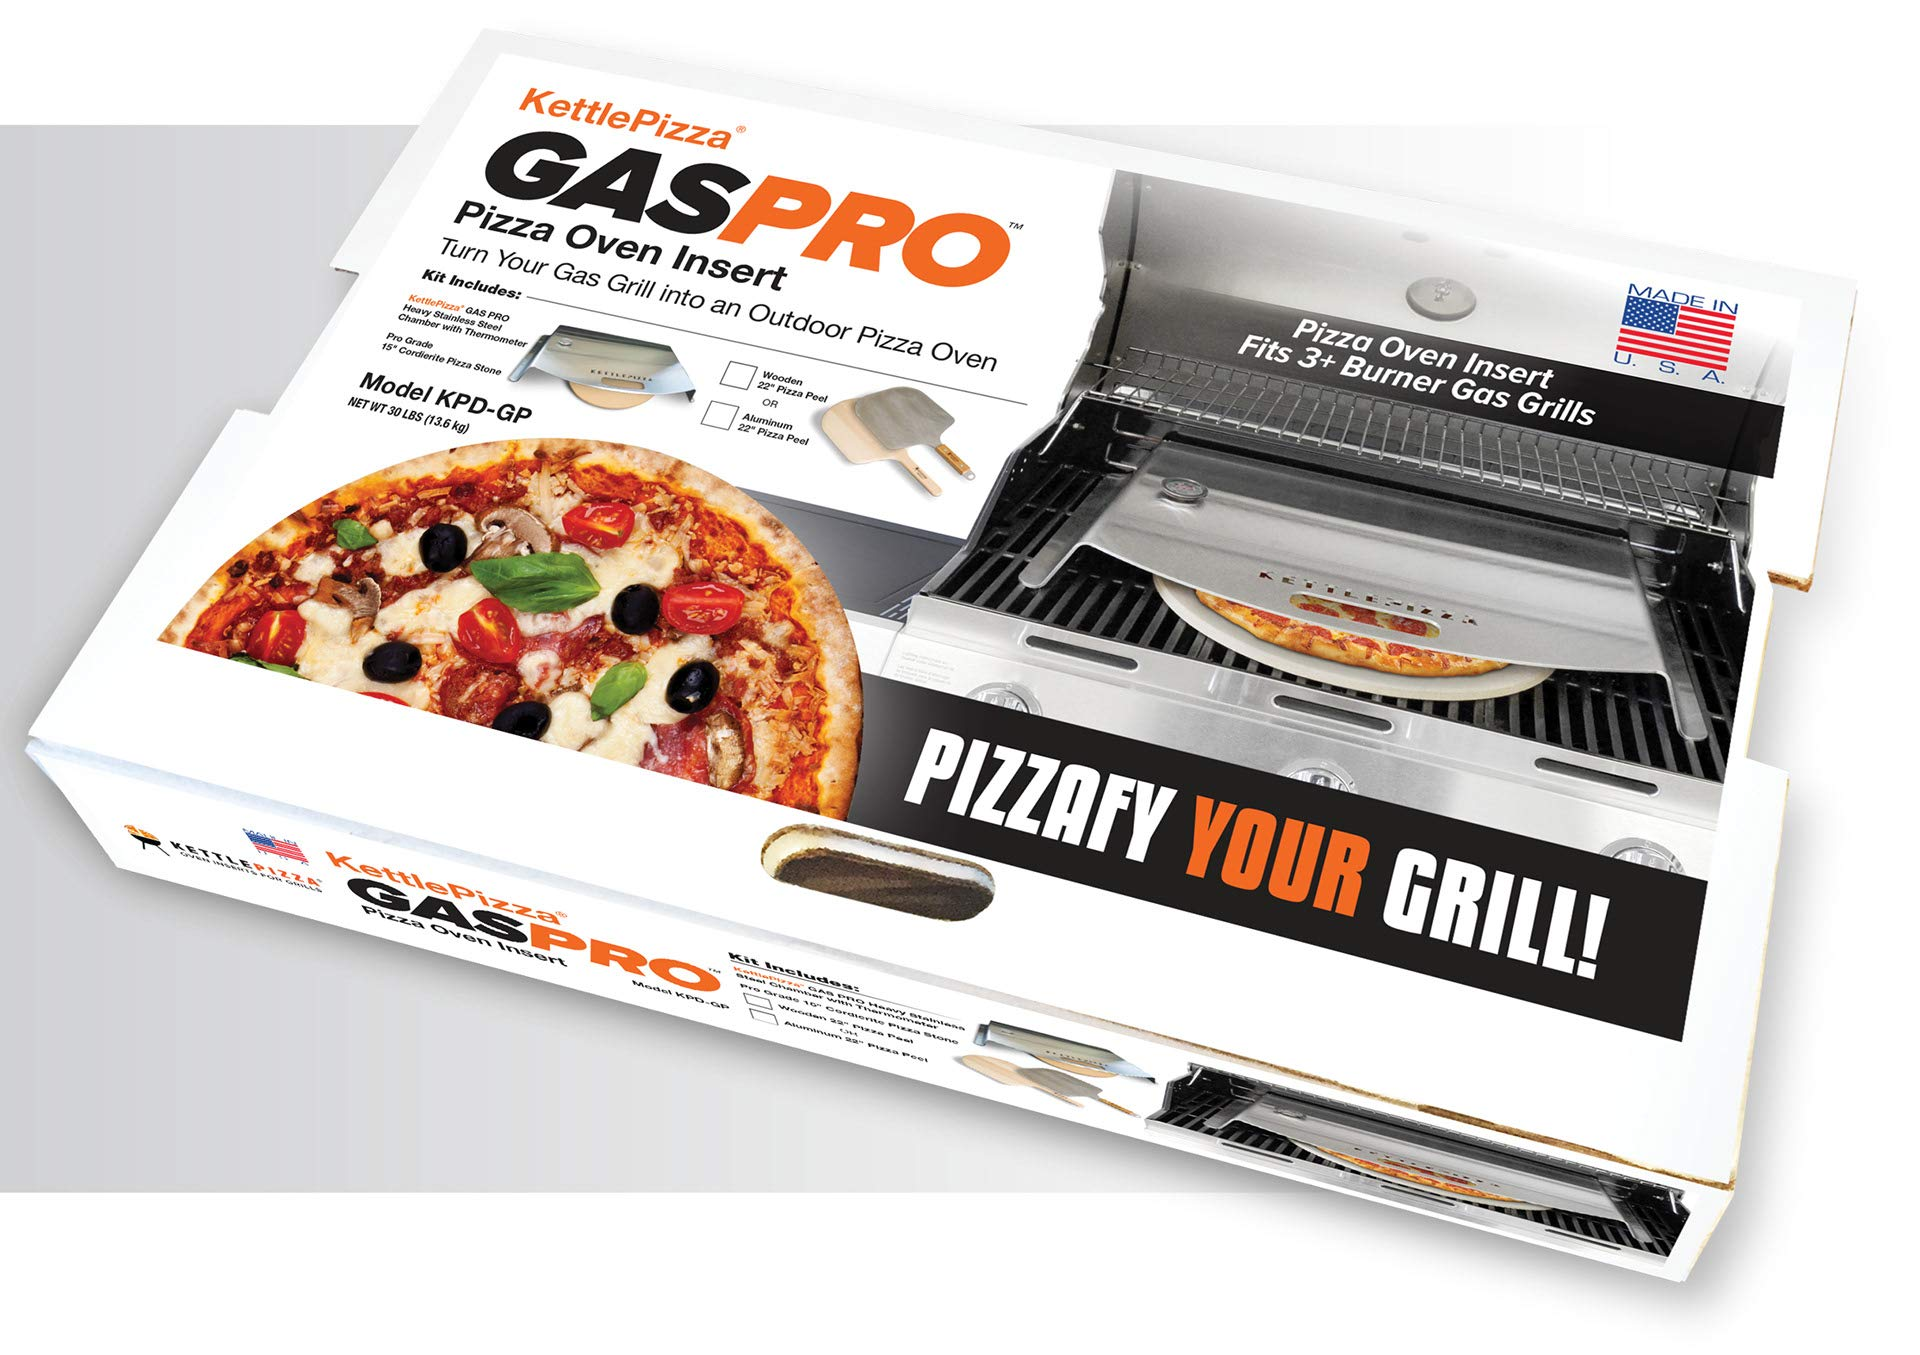 KettlePizza Gas Pro Basic Pizza Oven Kit - KPB-GP by Kettle Pizza (Image #1)